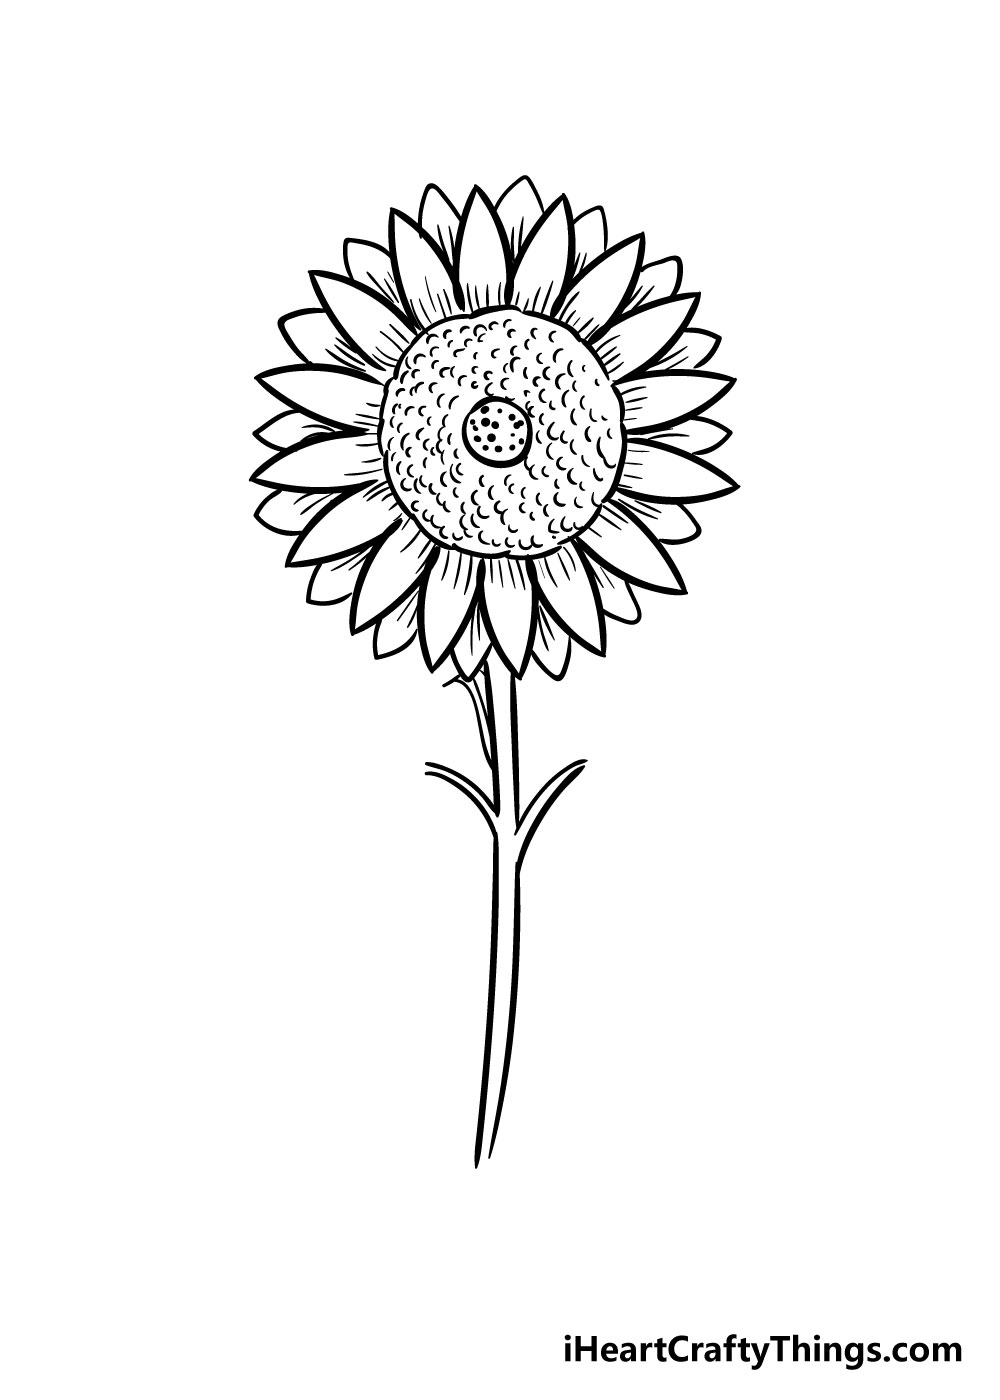 sunflower coloring step 8